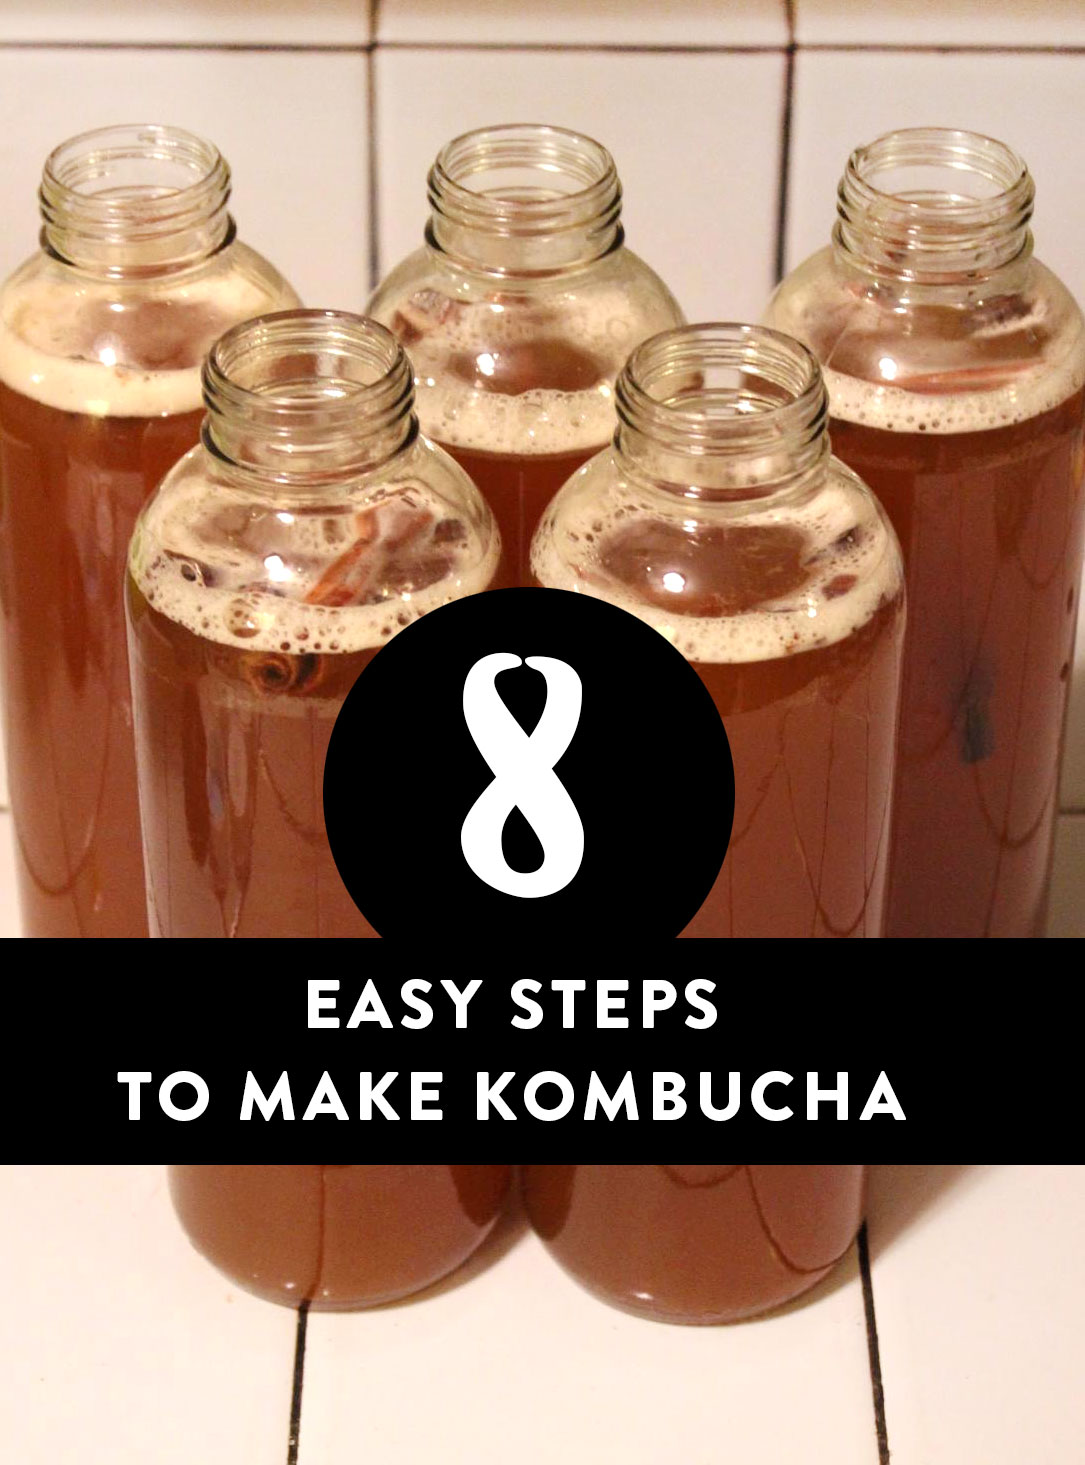 8 Easy Steps to Make Kombucha at home